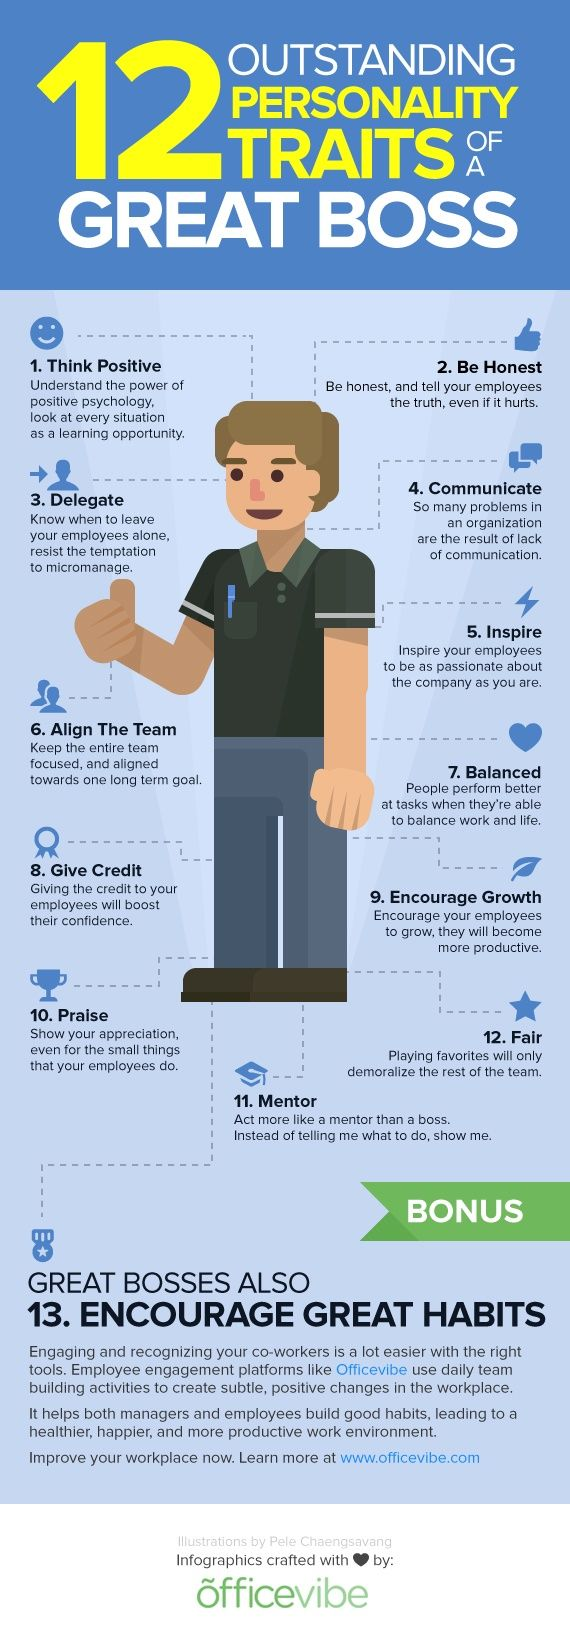 great boss 12 Outstanding Traits Every Great Boss Should Have